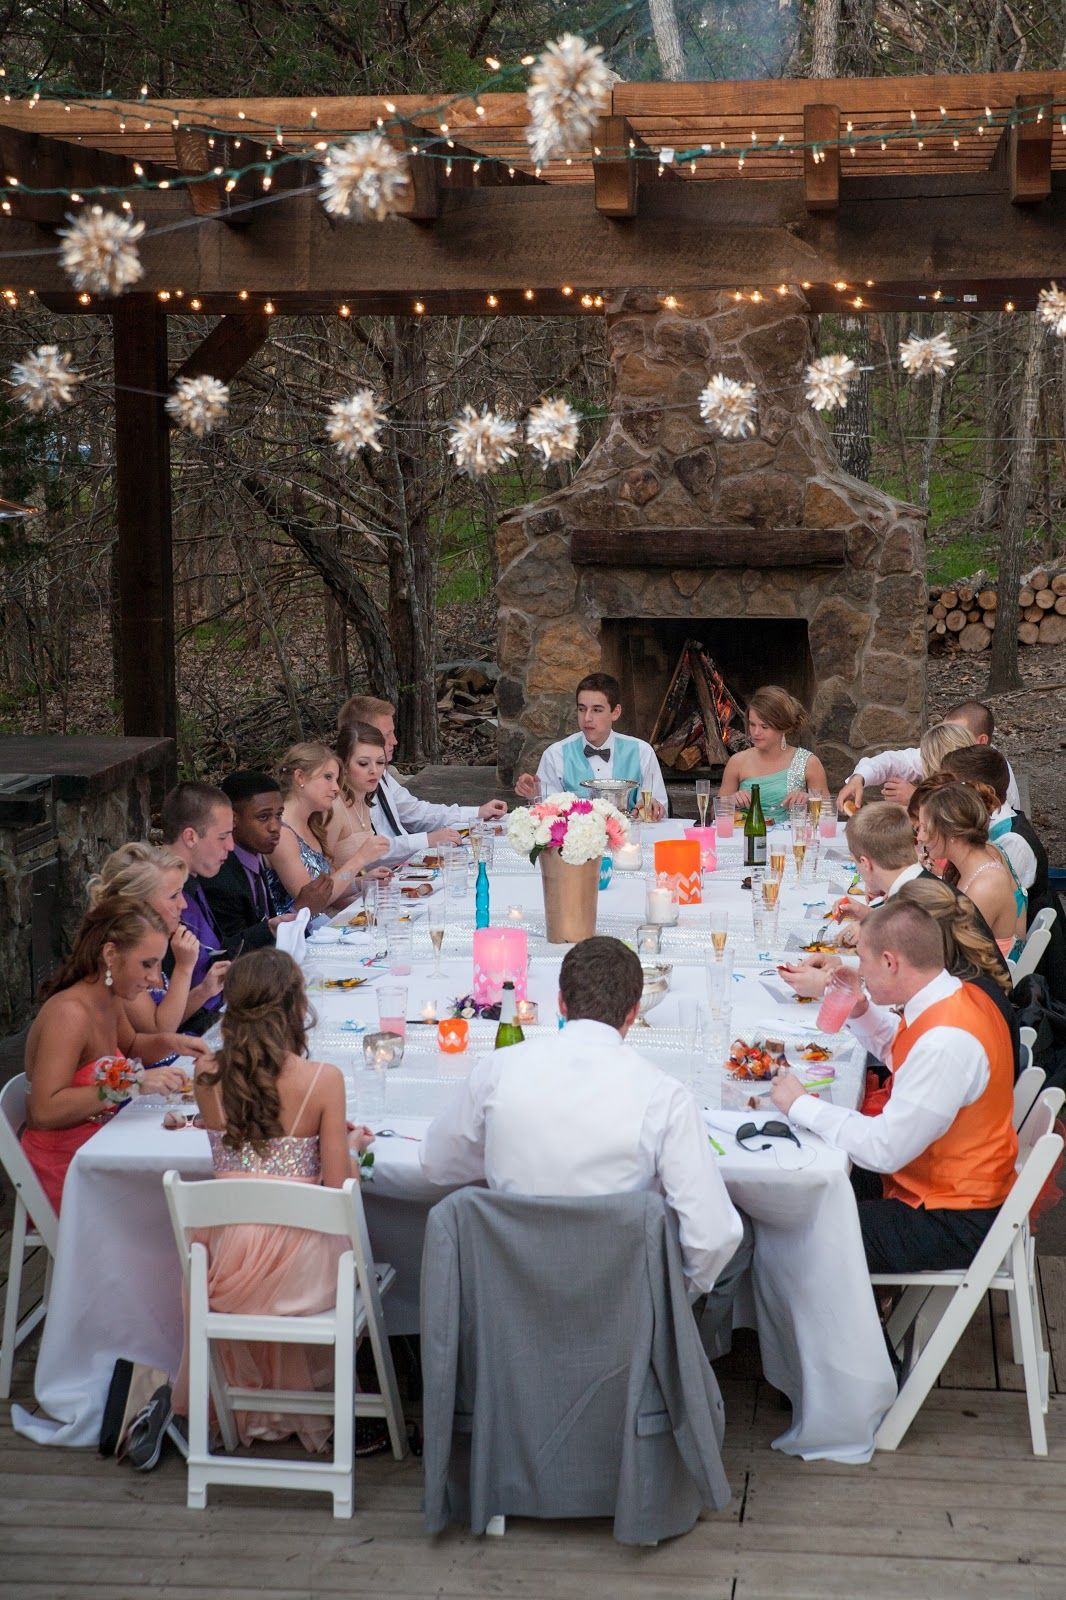 Marvelous Prom Dinner Party Ideas Part - 1: Abby Mitchell Event Planning And Design: Real Event: Prom Dinner Party